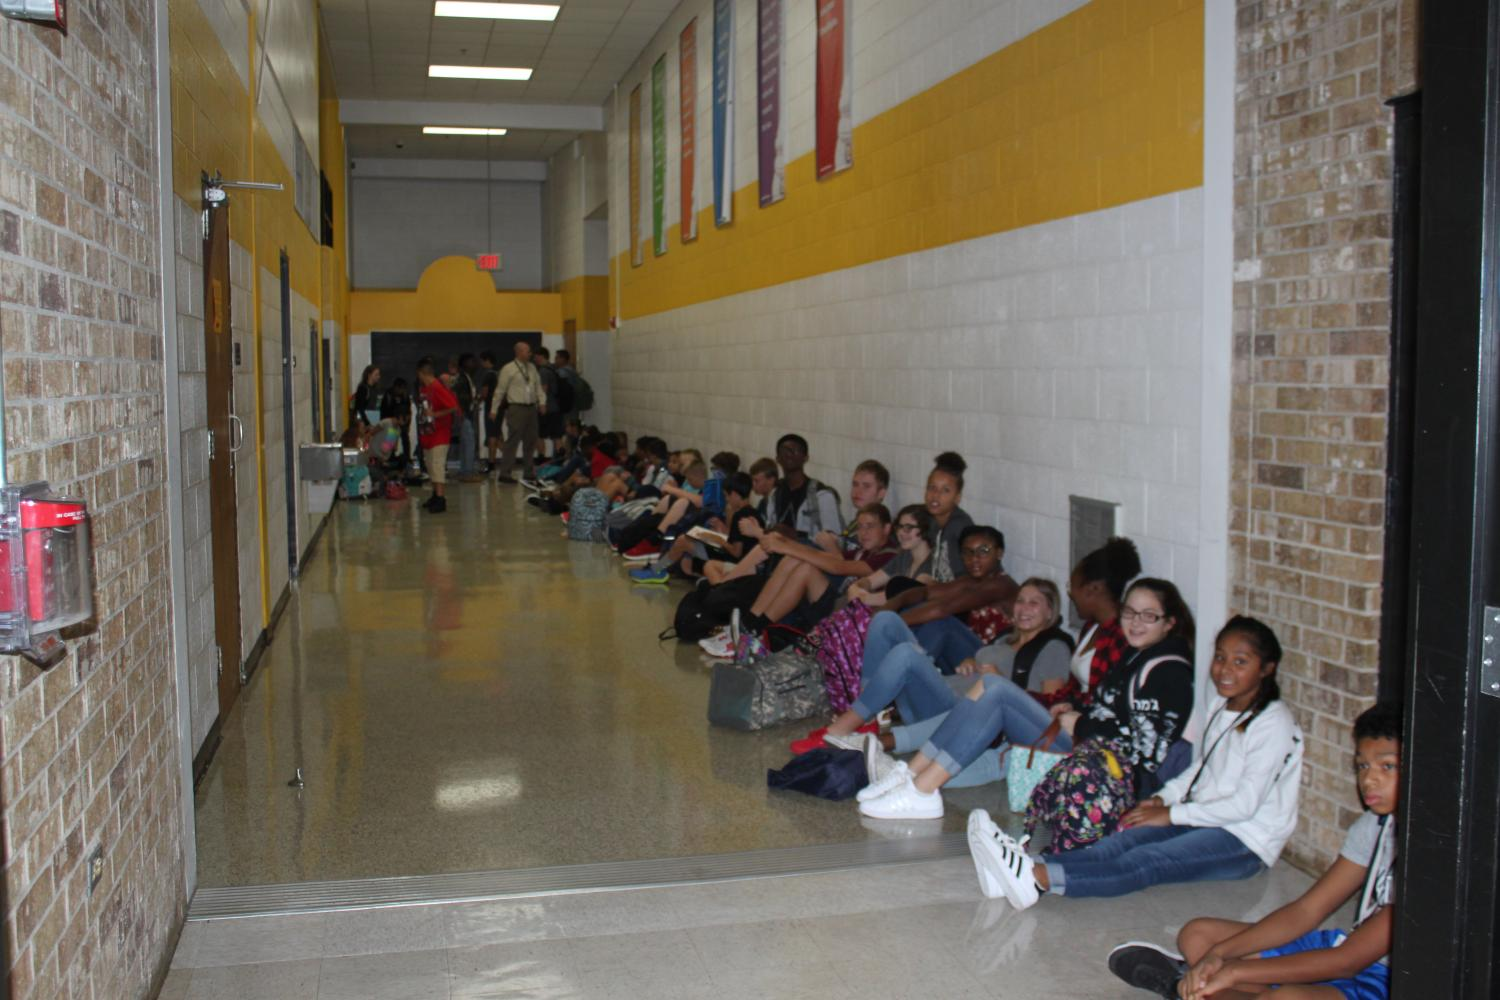 Students sit in overflow area before school.